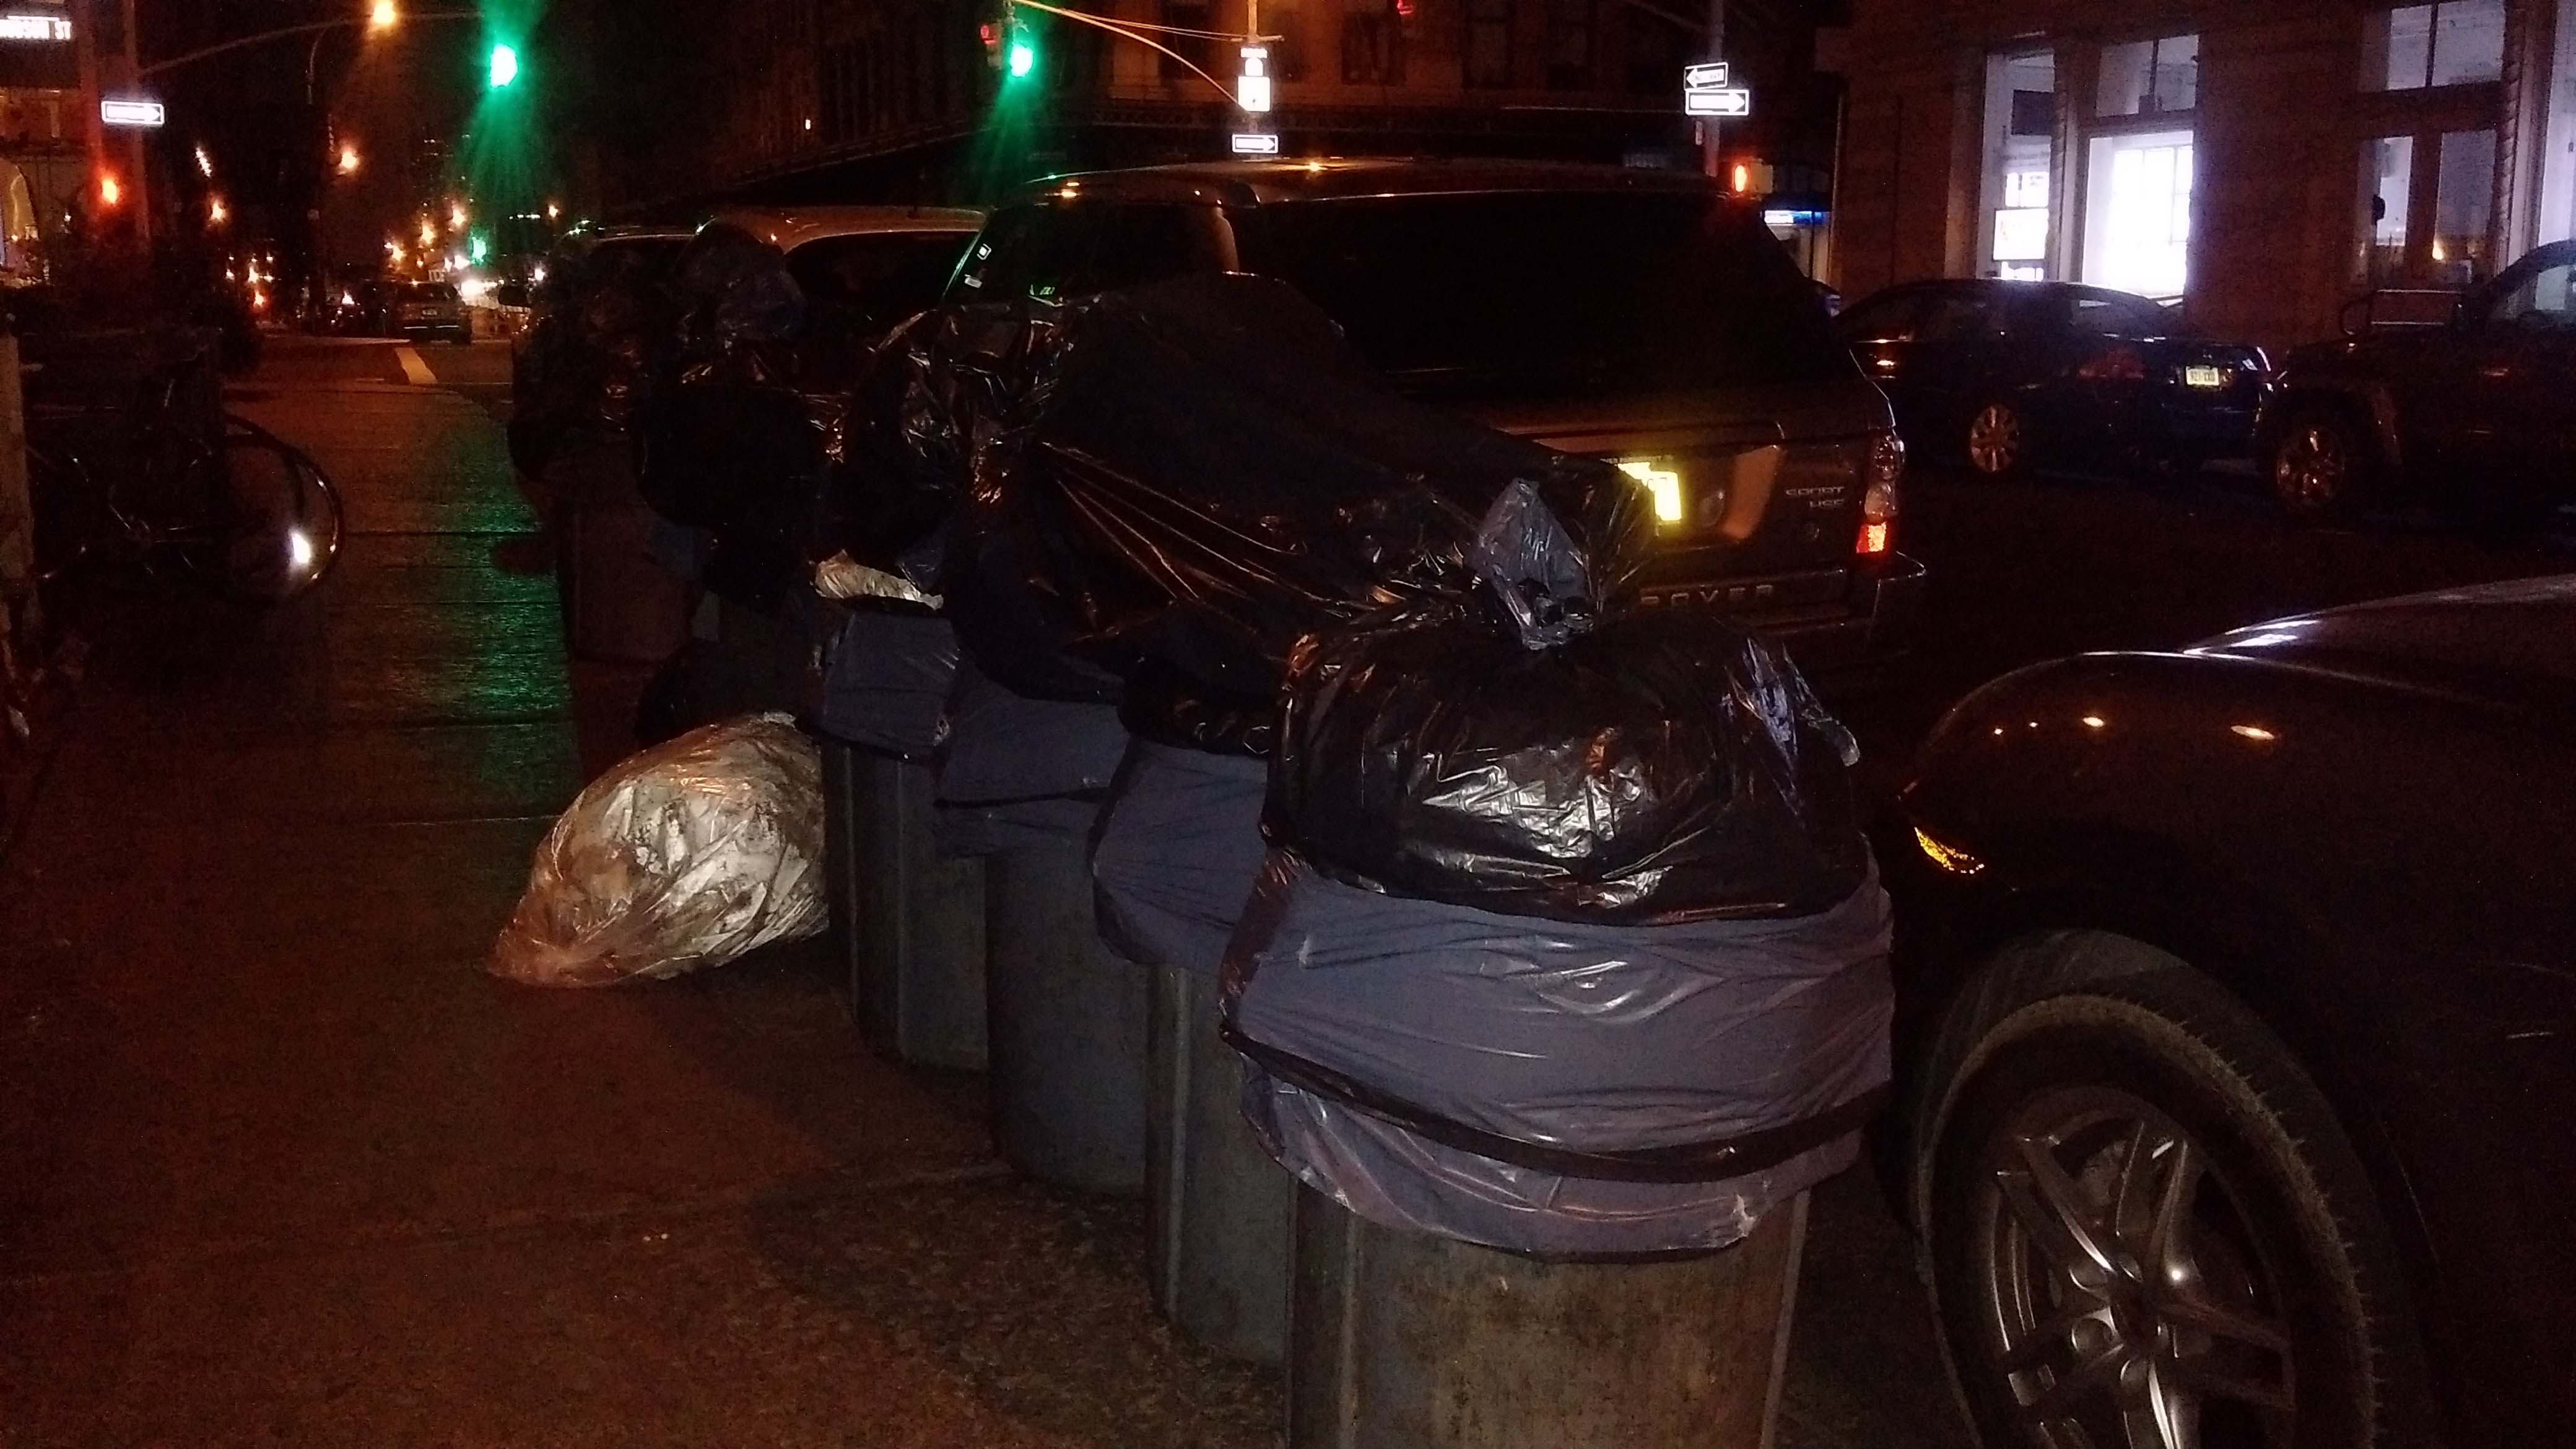 Bubbys trash cans properly elevated